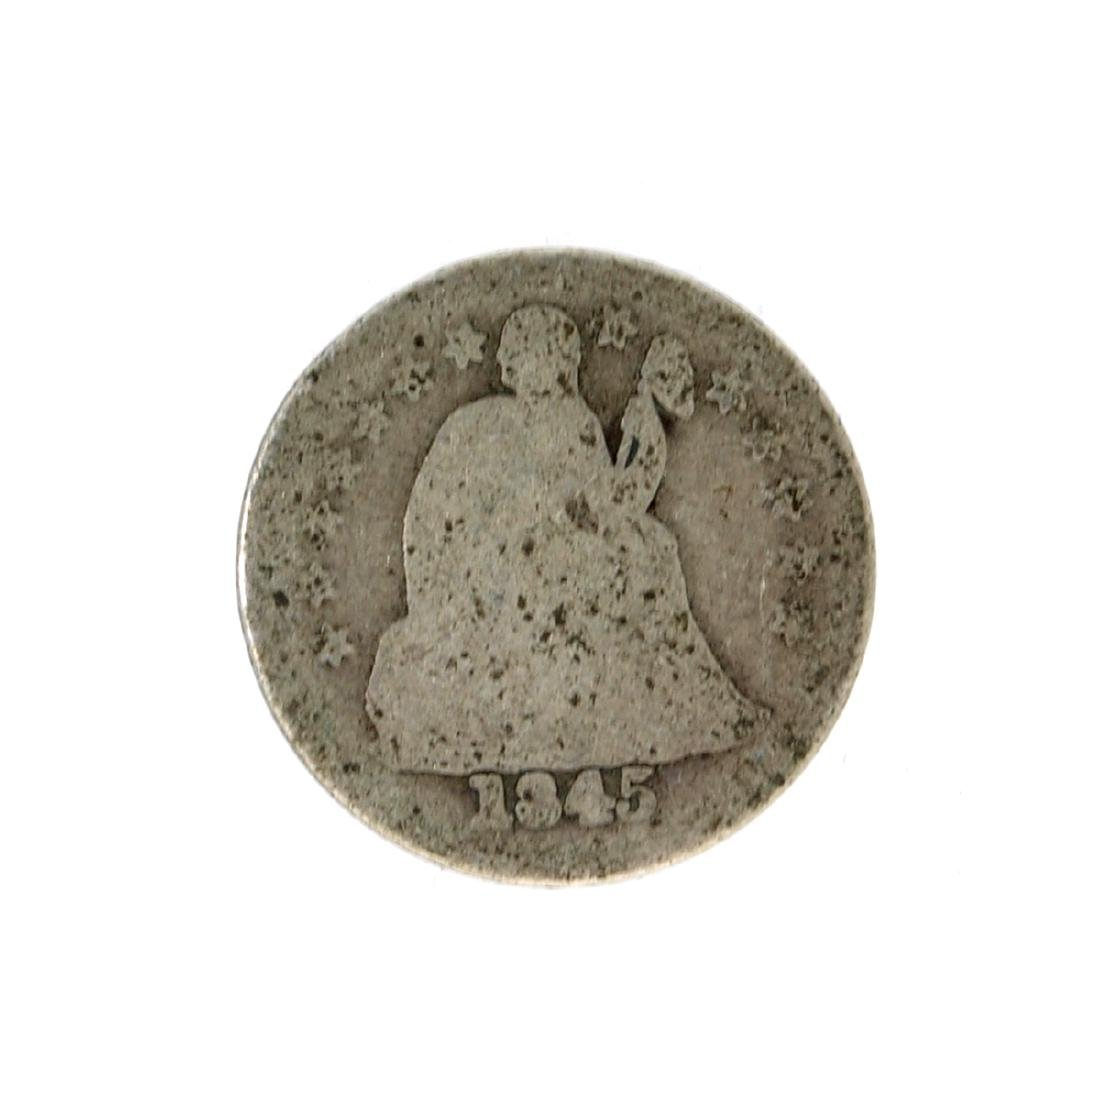 1845 Liberty Seated Dime Coin